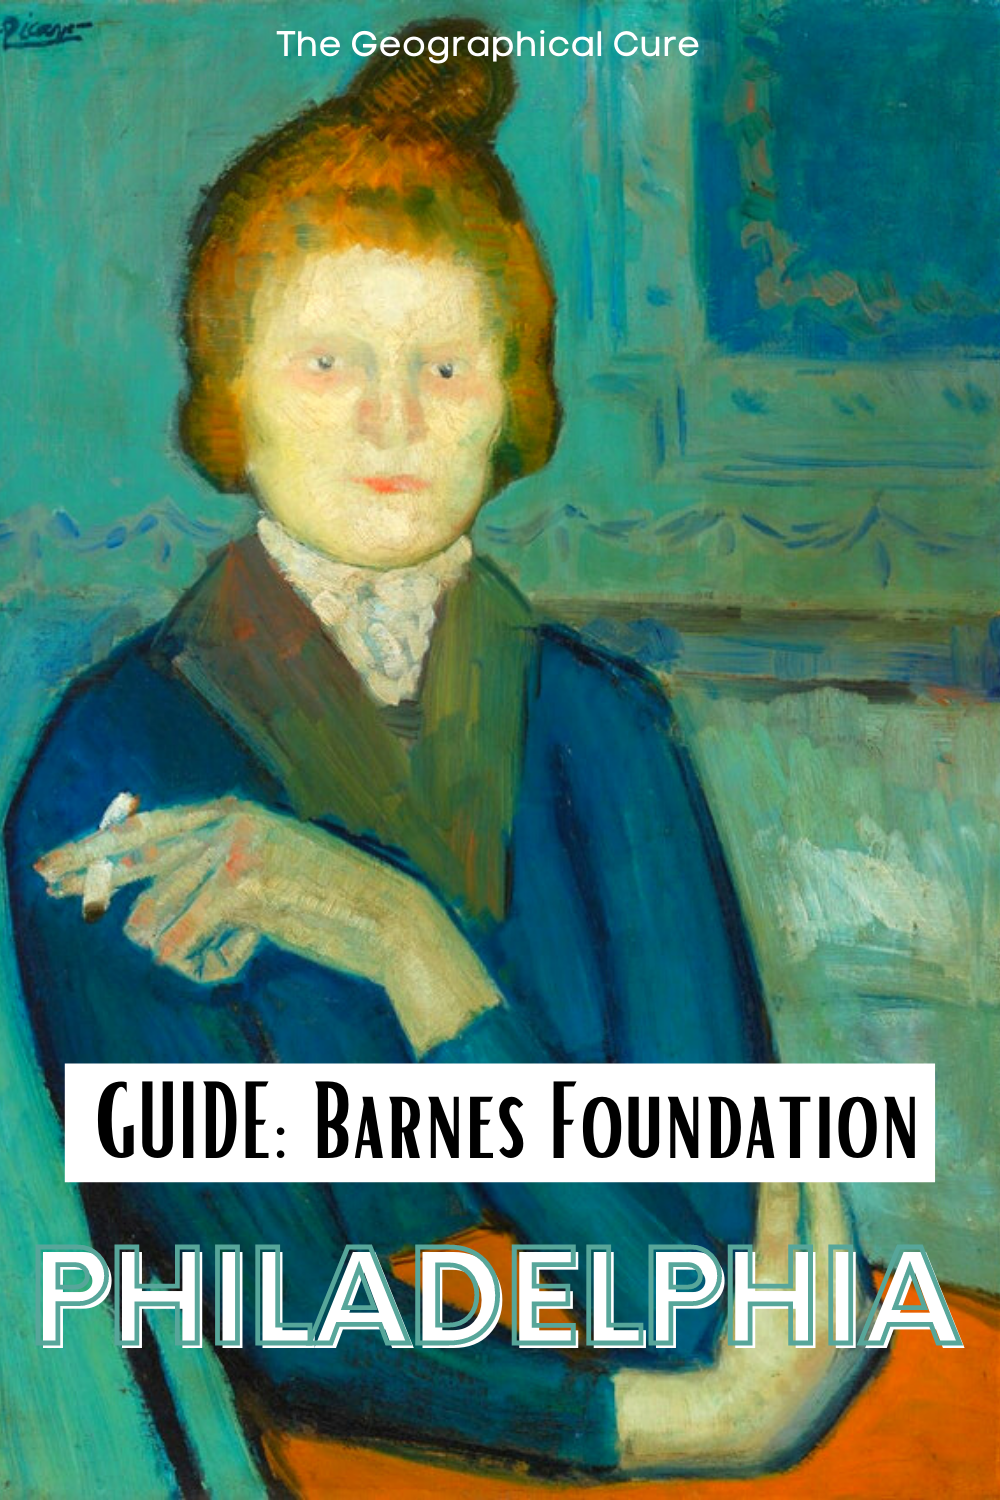 guide to the masterpieces of the Barnes Foundation in Philadelphia